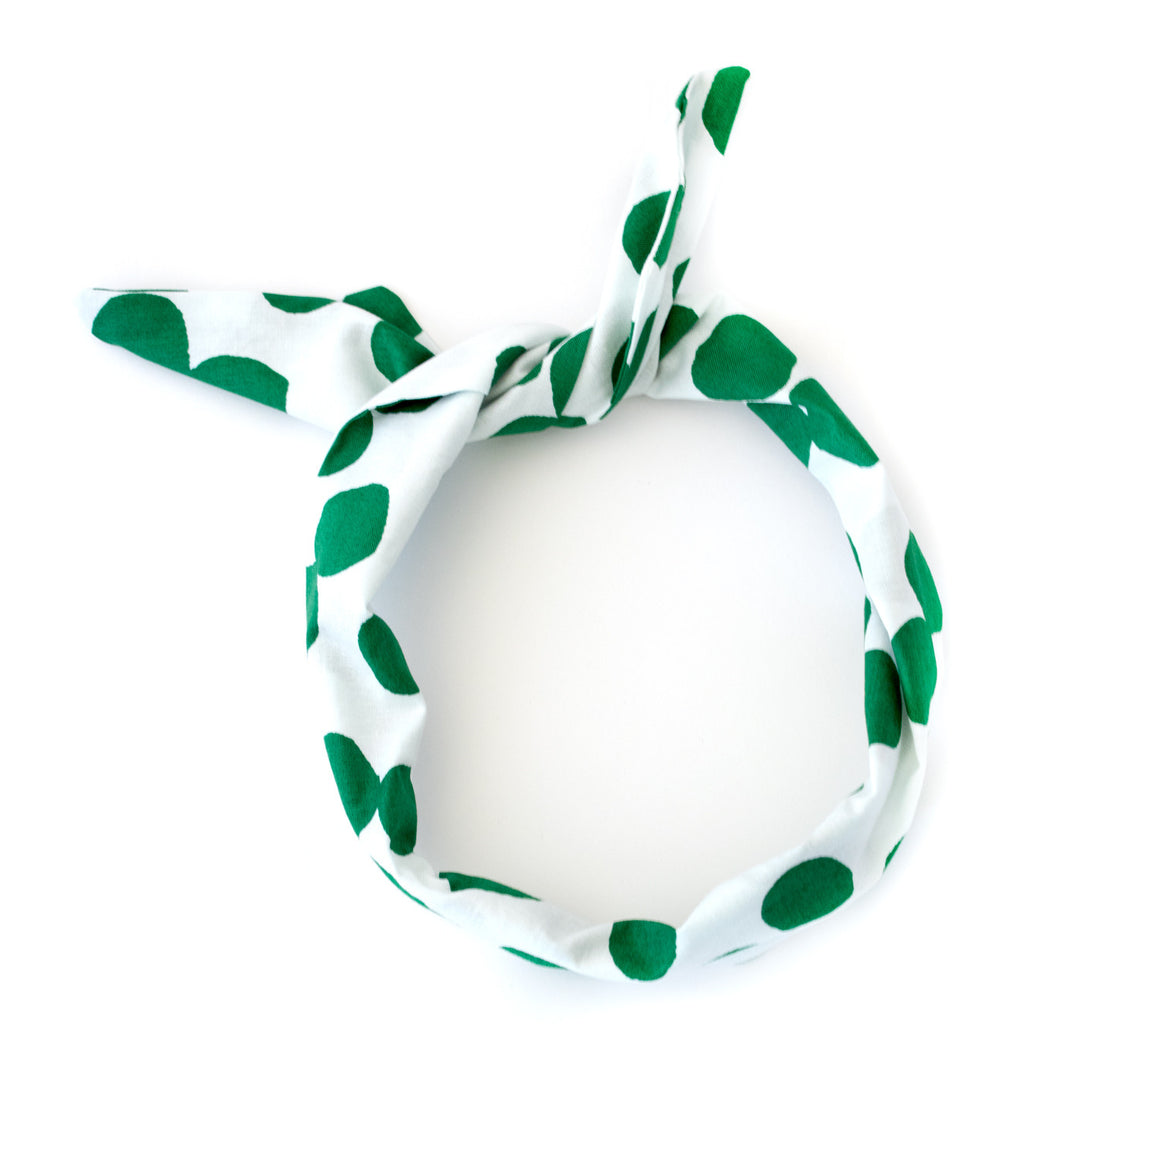 green polka dot wire headband. mod 1960s inspired head wrap